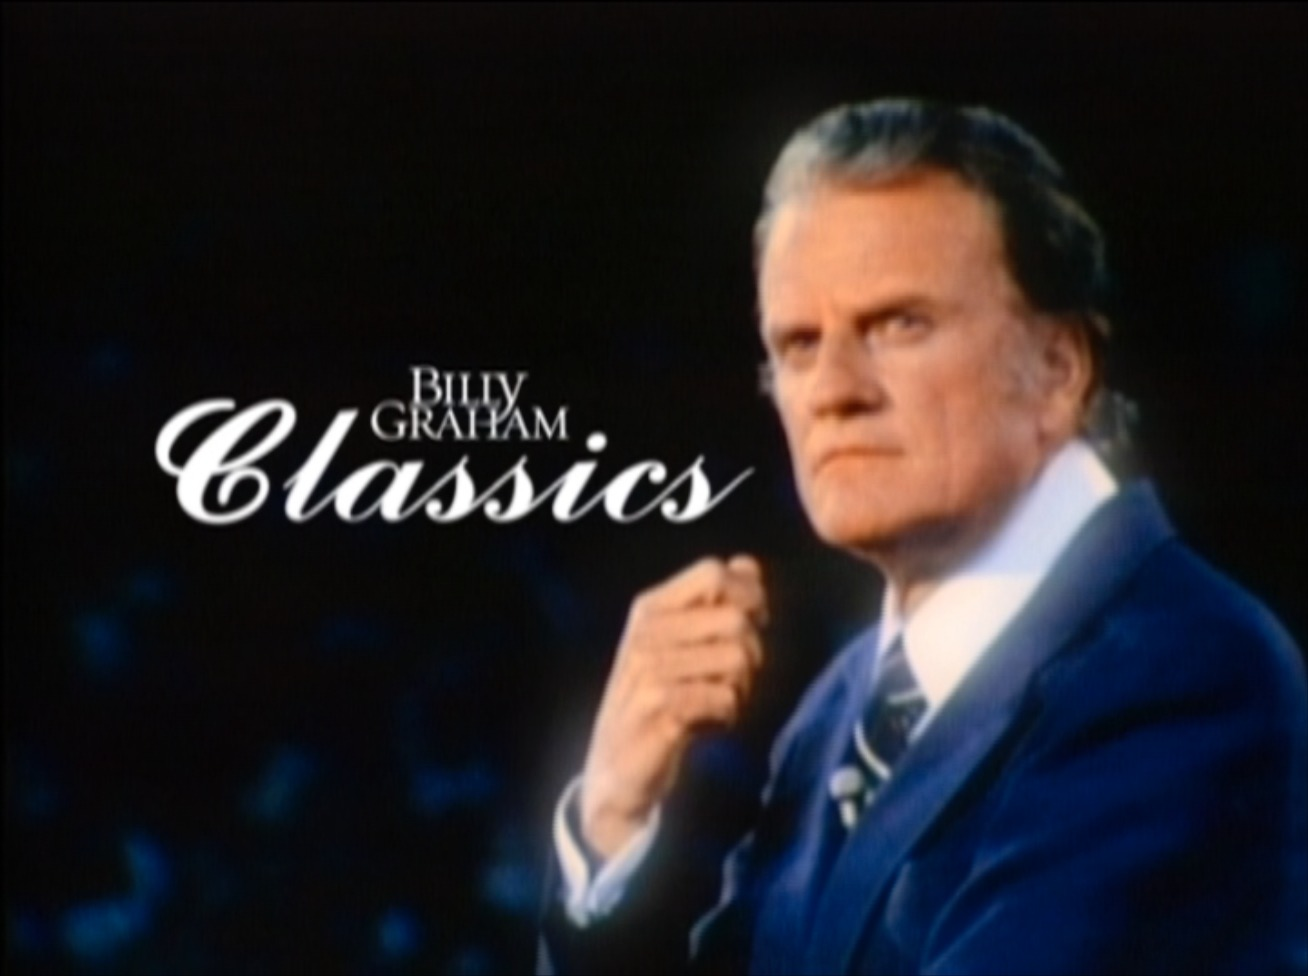 Truth And Freedom A Classic Billy Graham Message